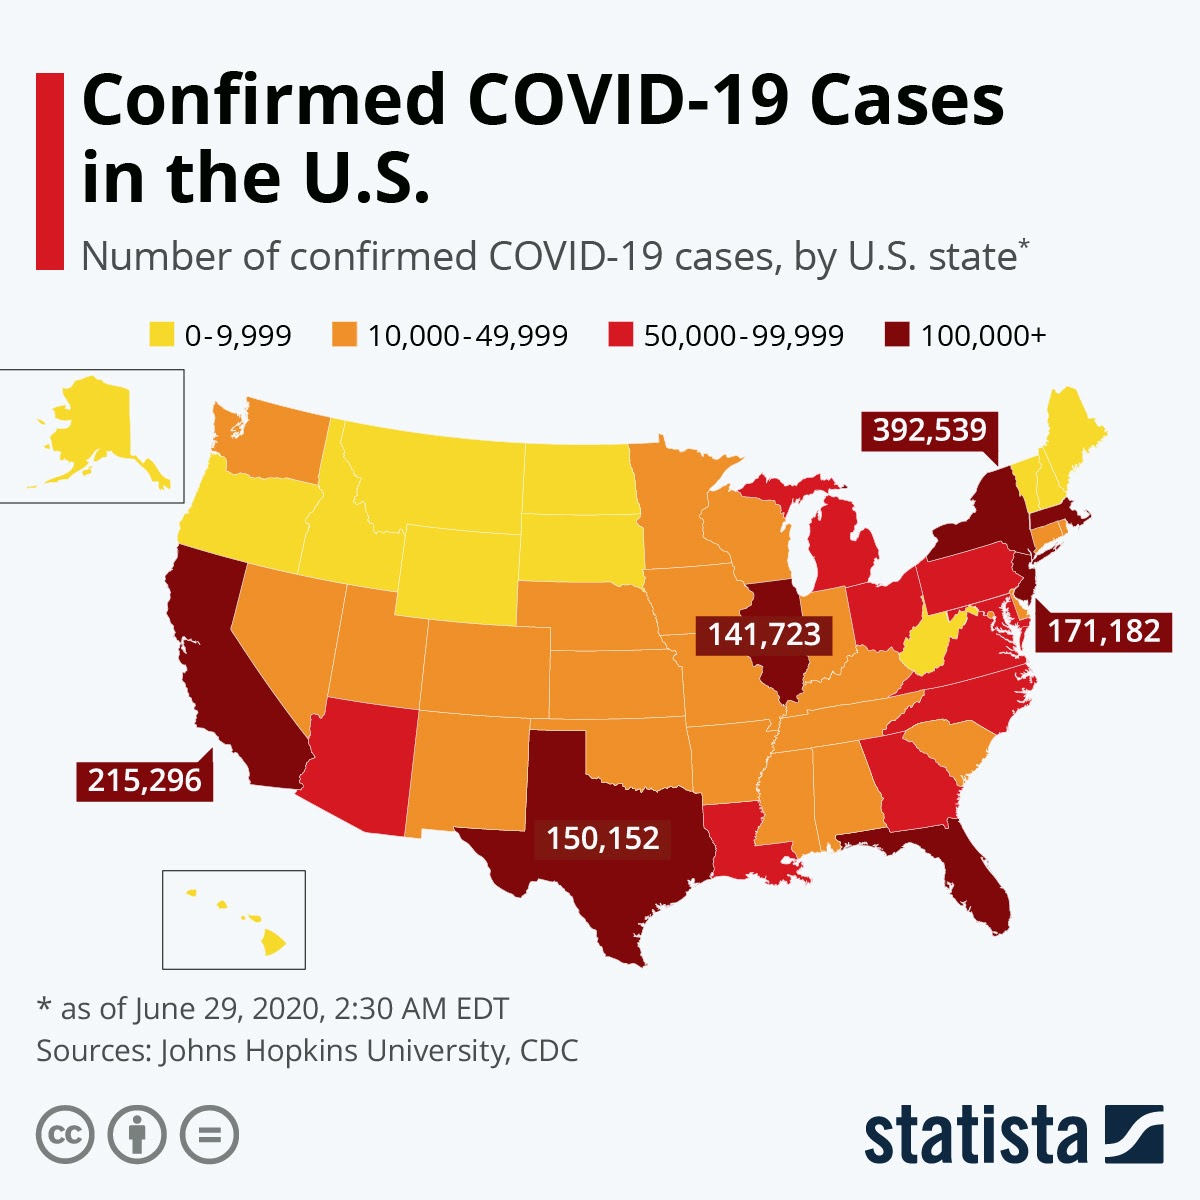 Confirmed COVID-19 Cases in the U.S.#infographic